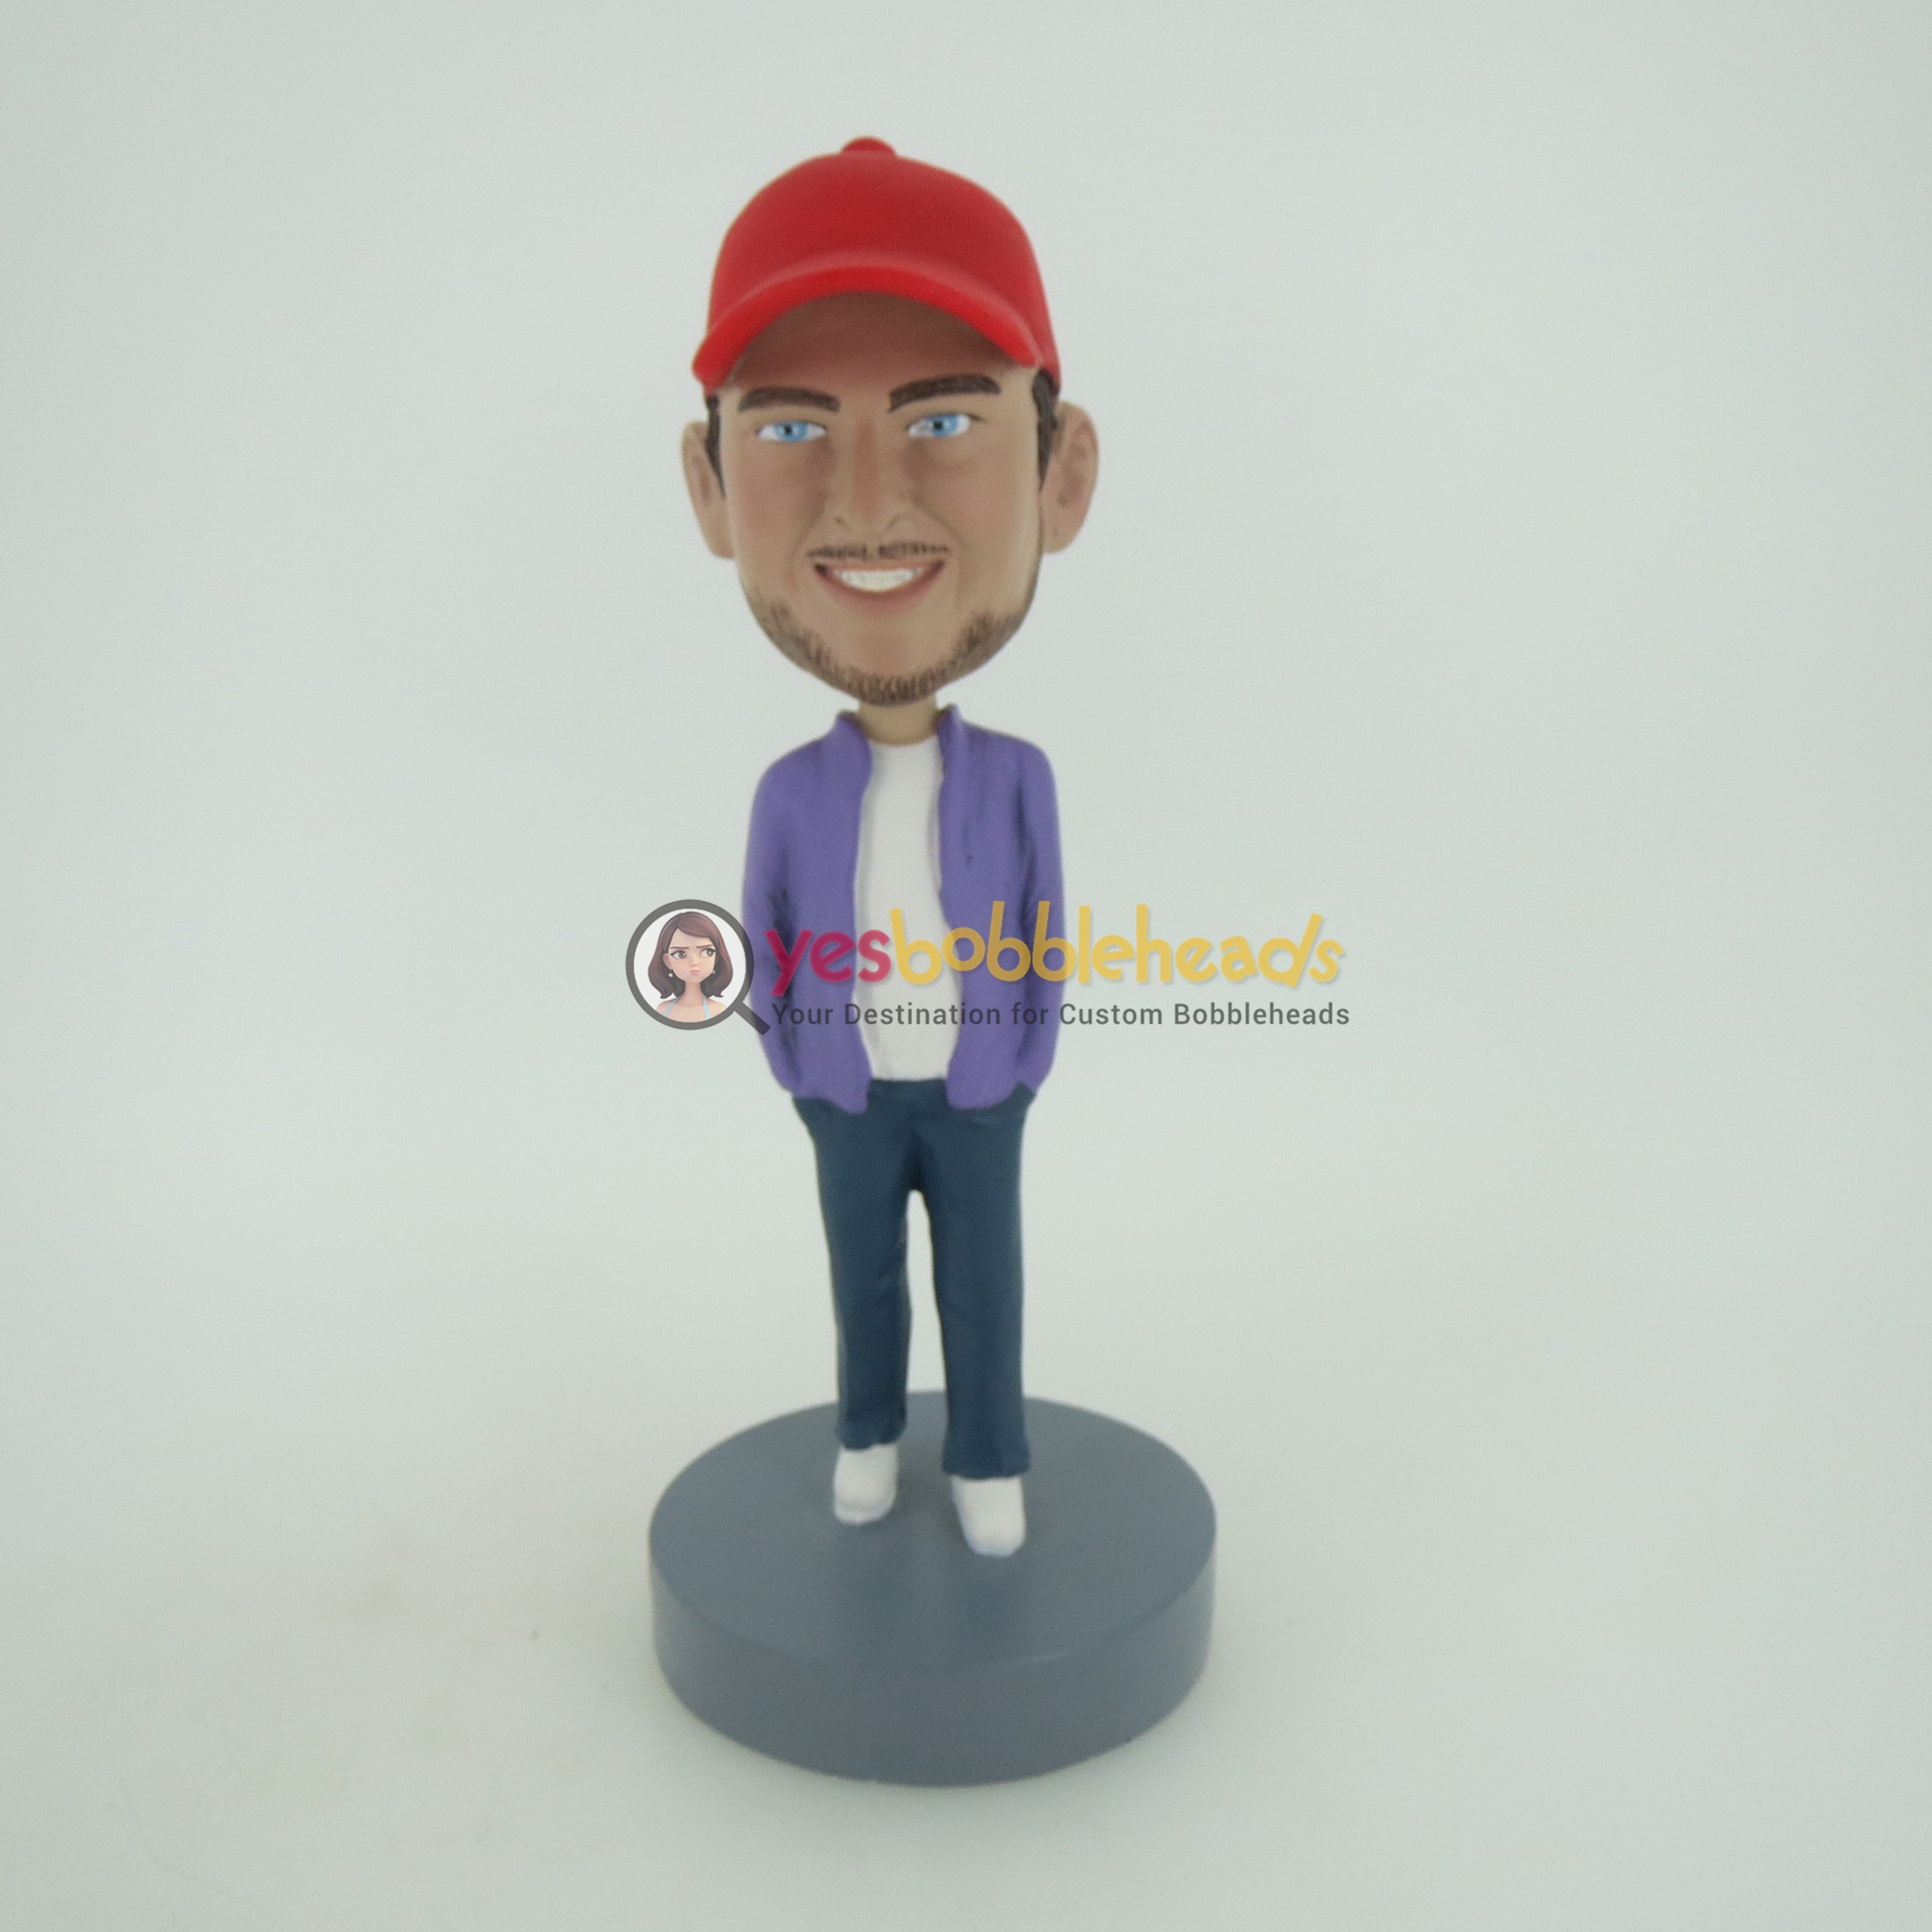 Picture of Custom Bobblehead Doll: Casual Man In Red Hat With Hands In Pockets